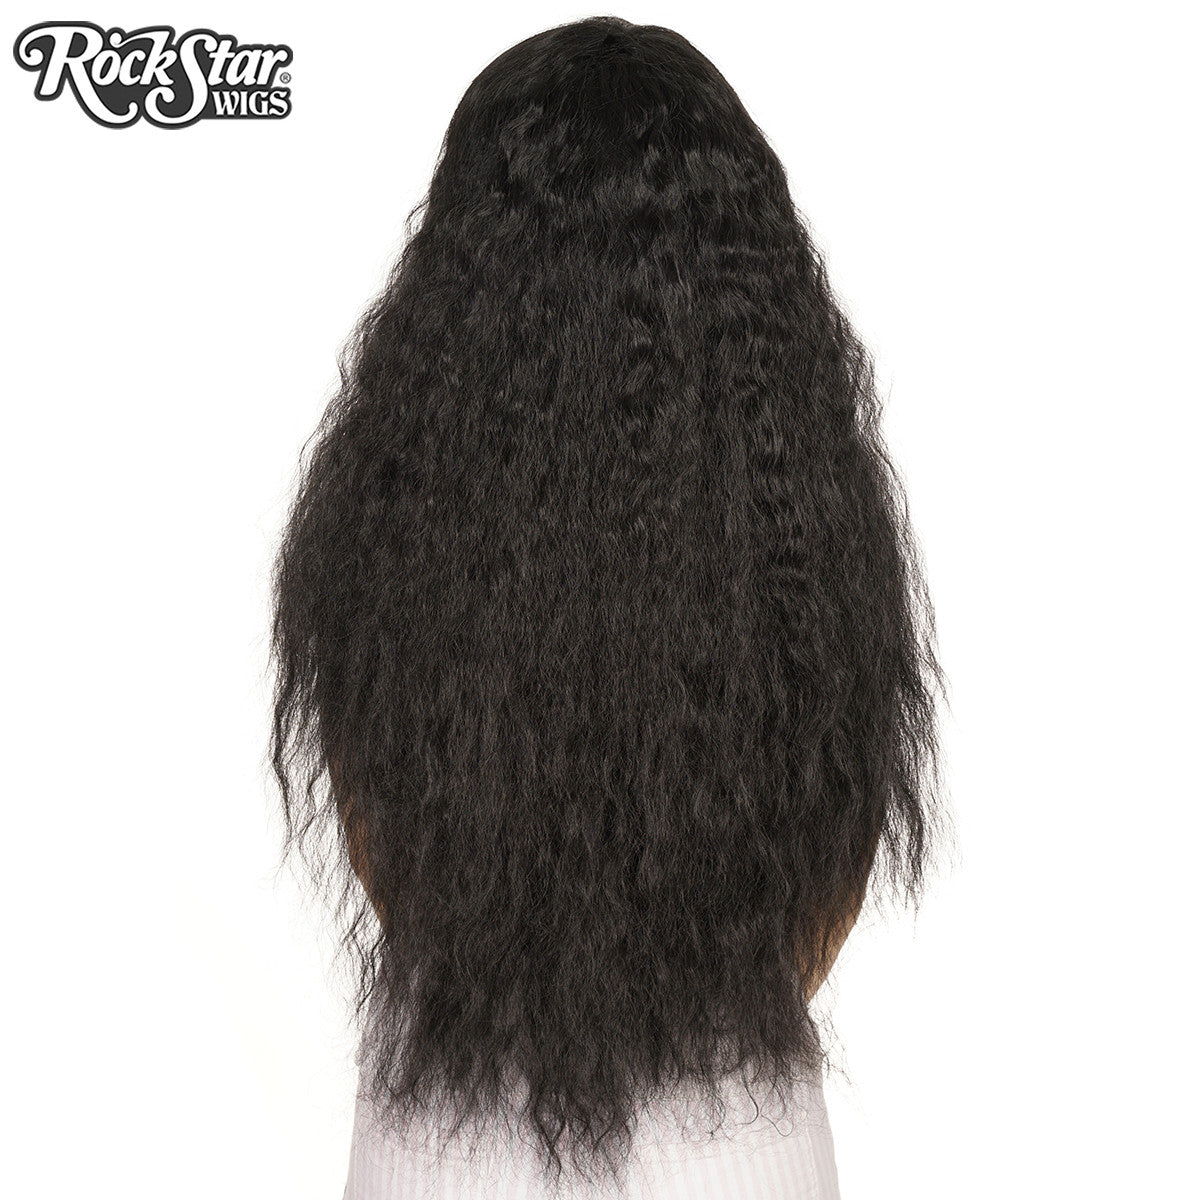 RockStar Wigs® <br> Prima Donna™ Collection - Phantom Black -00216